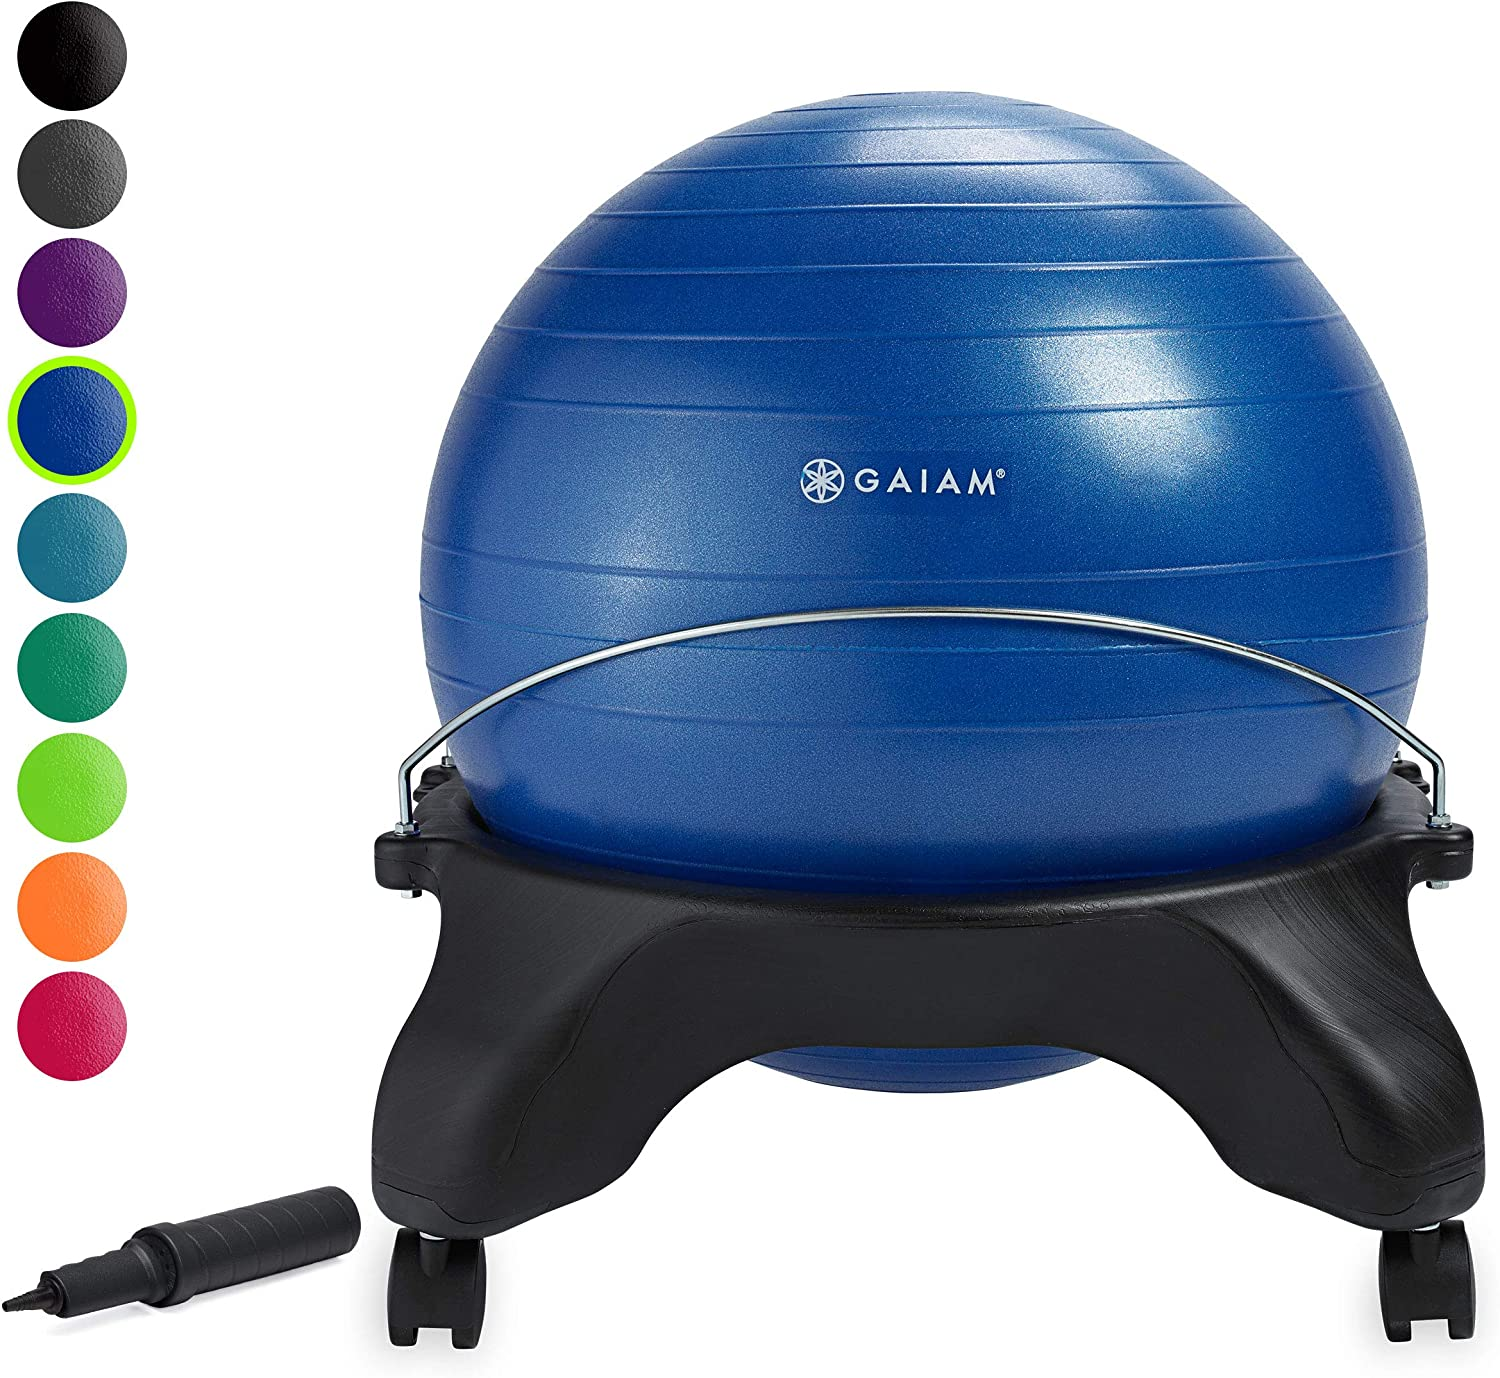 Amazon Com Gaiam Classic Backless Balance Ball Chair Exercise Stability Yoga Ball Premium Ergonomic Chair For Home And Office Desk With Air Pump Exercise Guide And Satisfaction Guarantee Blue Sports Outdoors